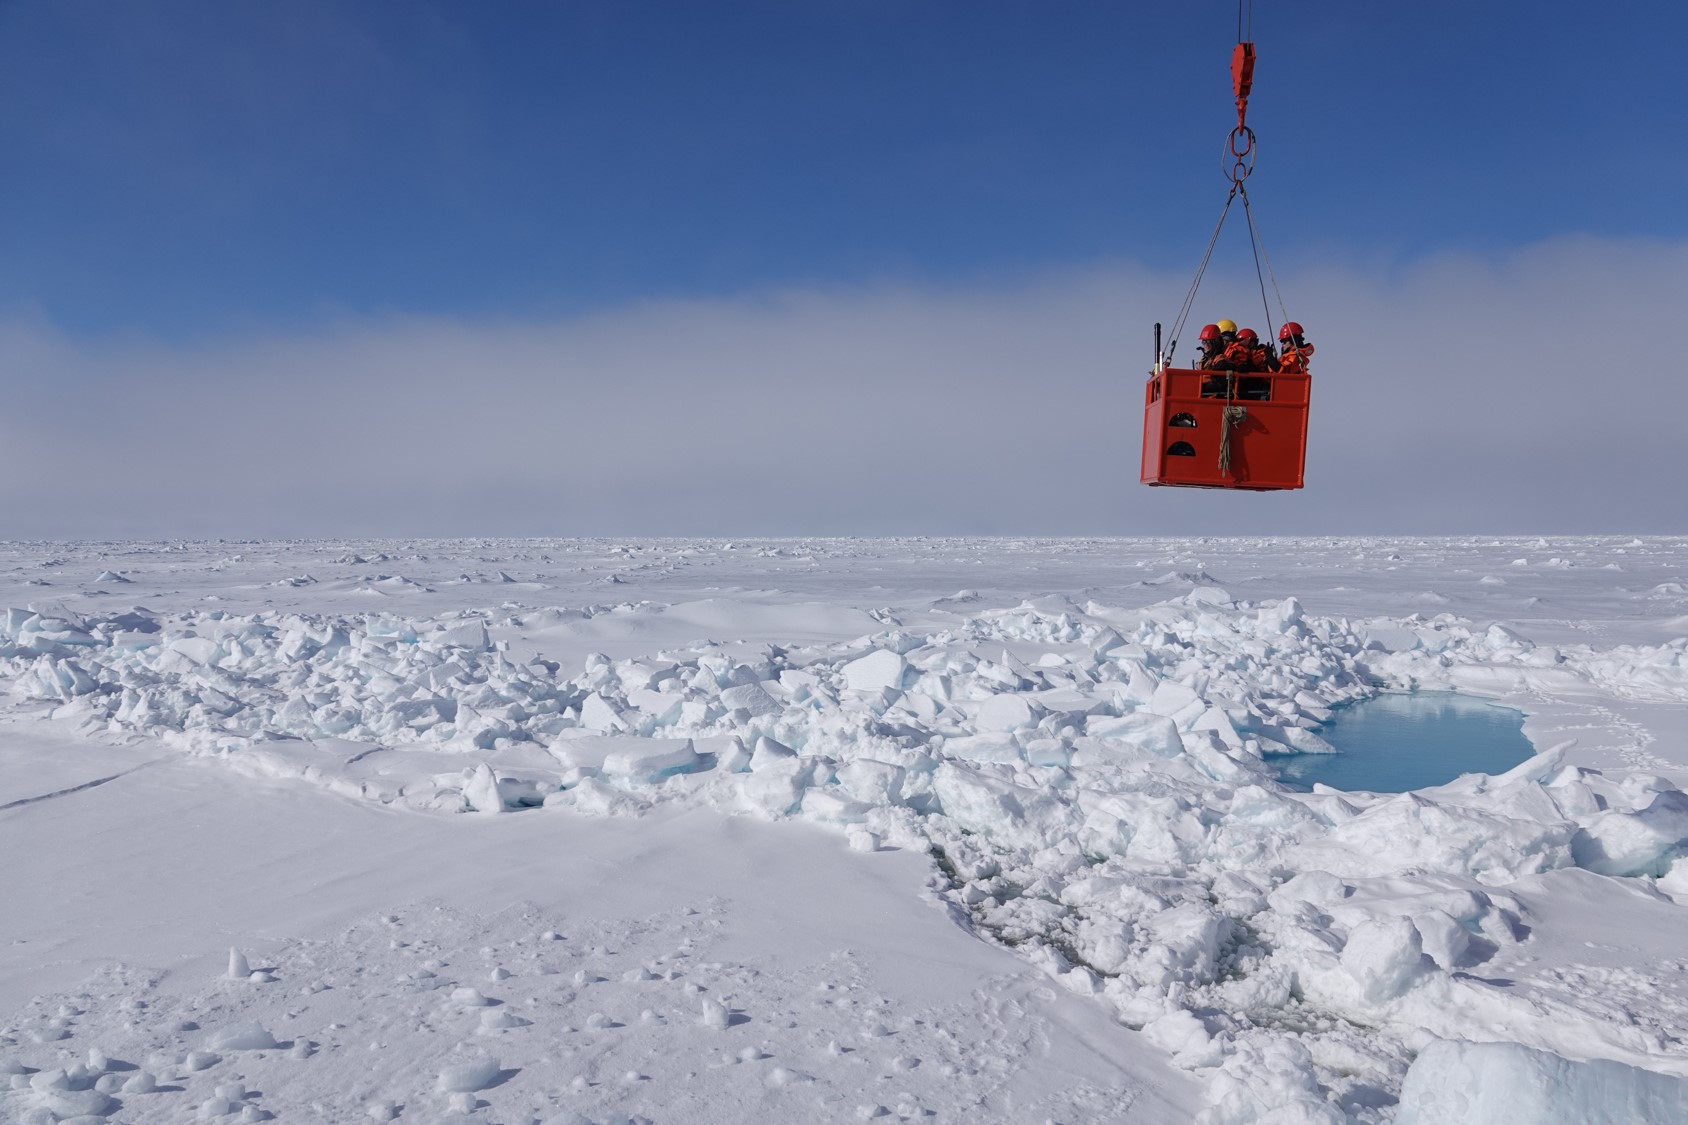 A group of scientists get hoisted back their ship after taking measurements on Arctic sea ice